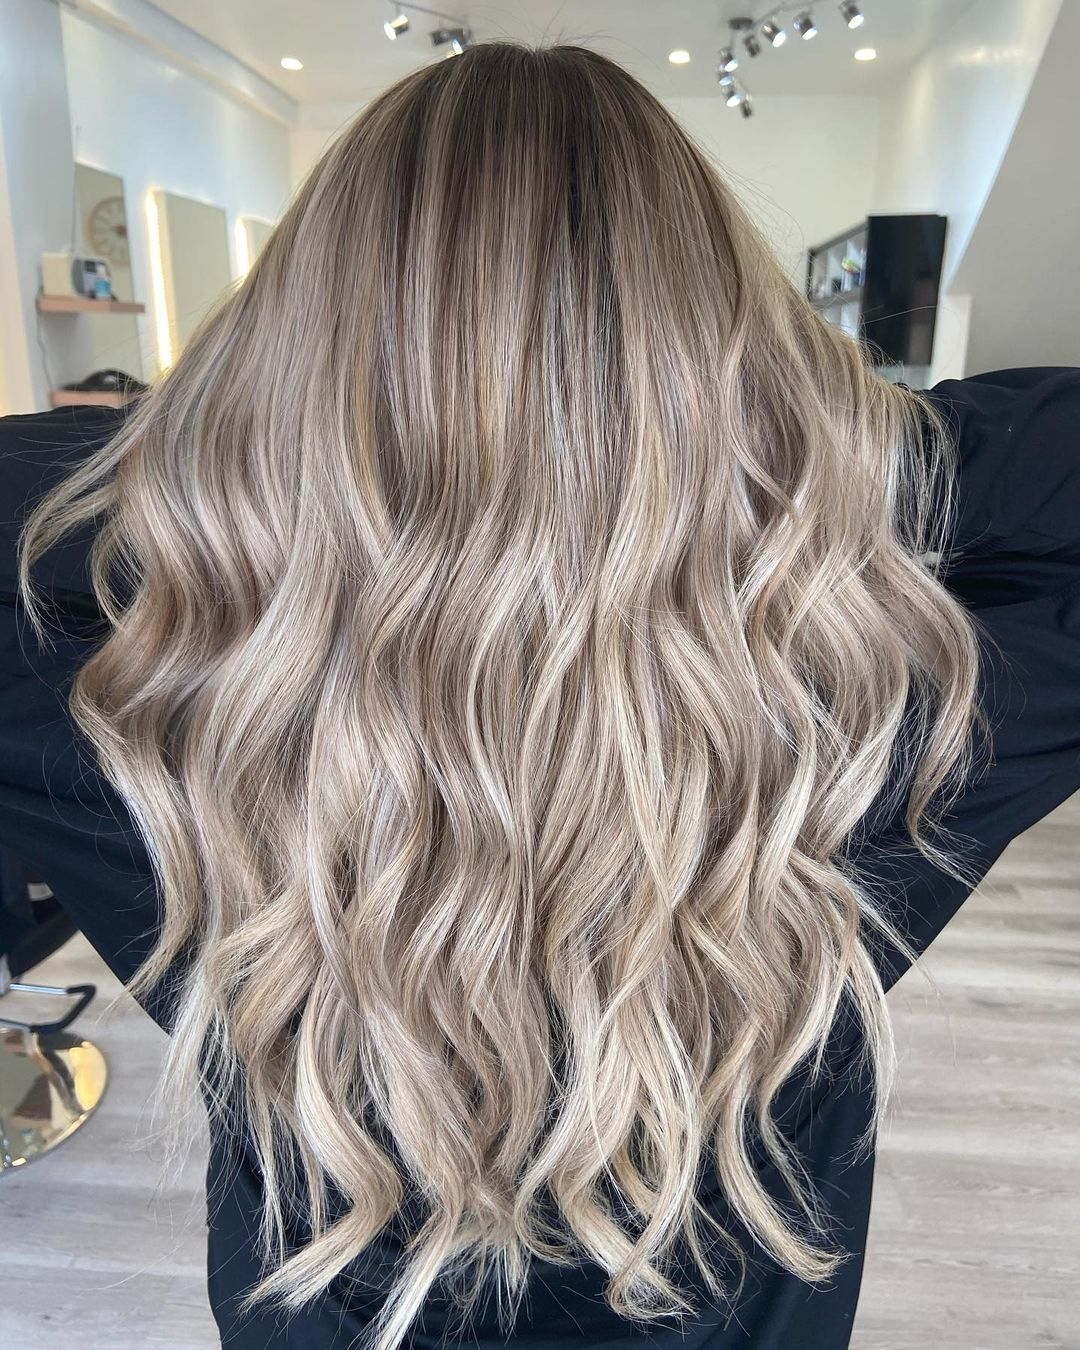 balayage hair colour at amour hairdressers in Salford Manchester